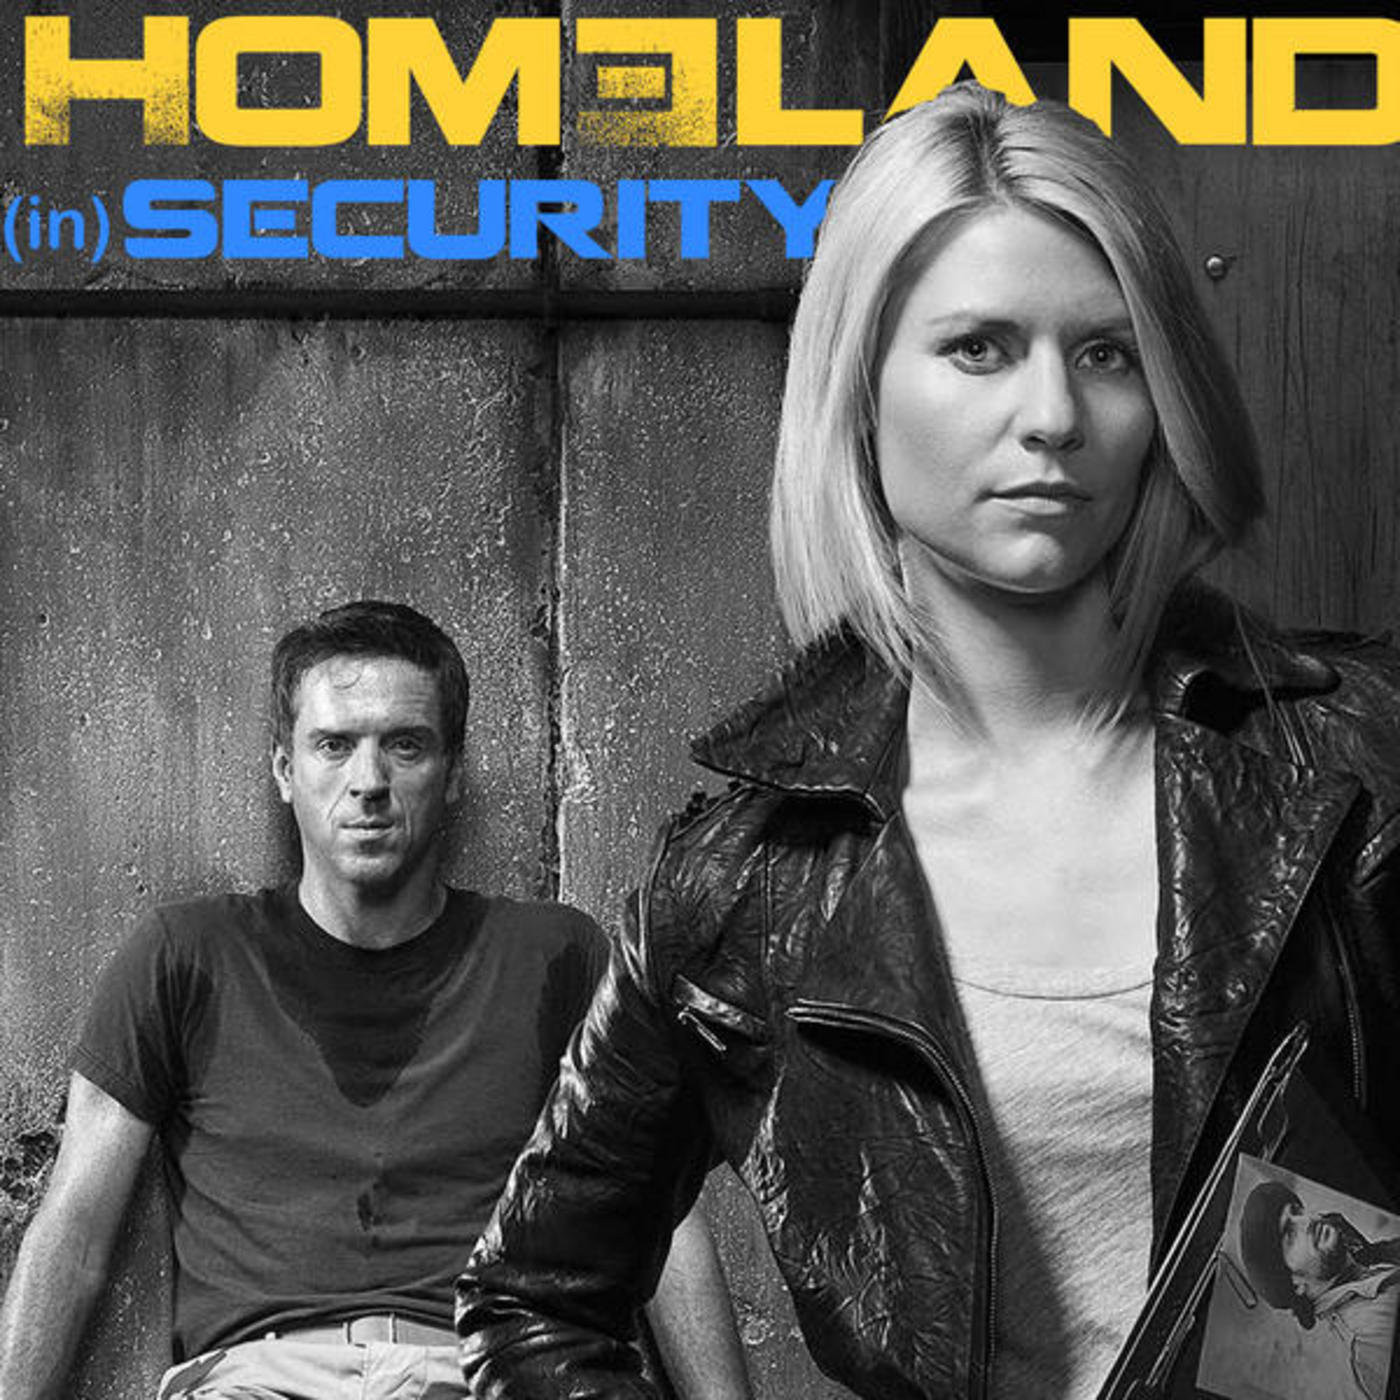 """Homeland Insecurity Podcast – S5E1 """"Separation Anxiety"""""""